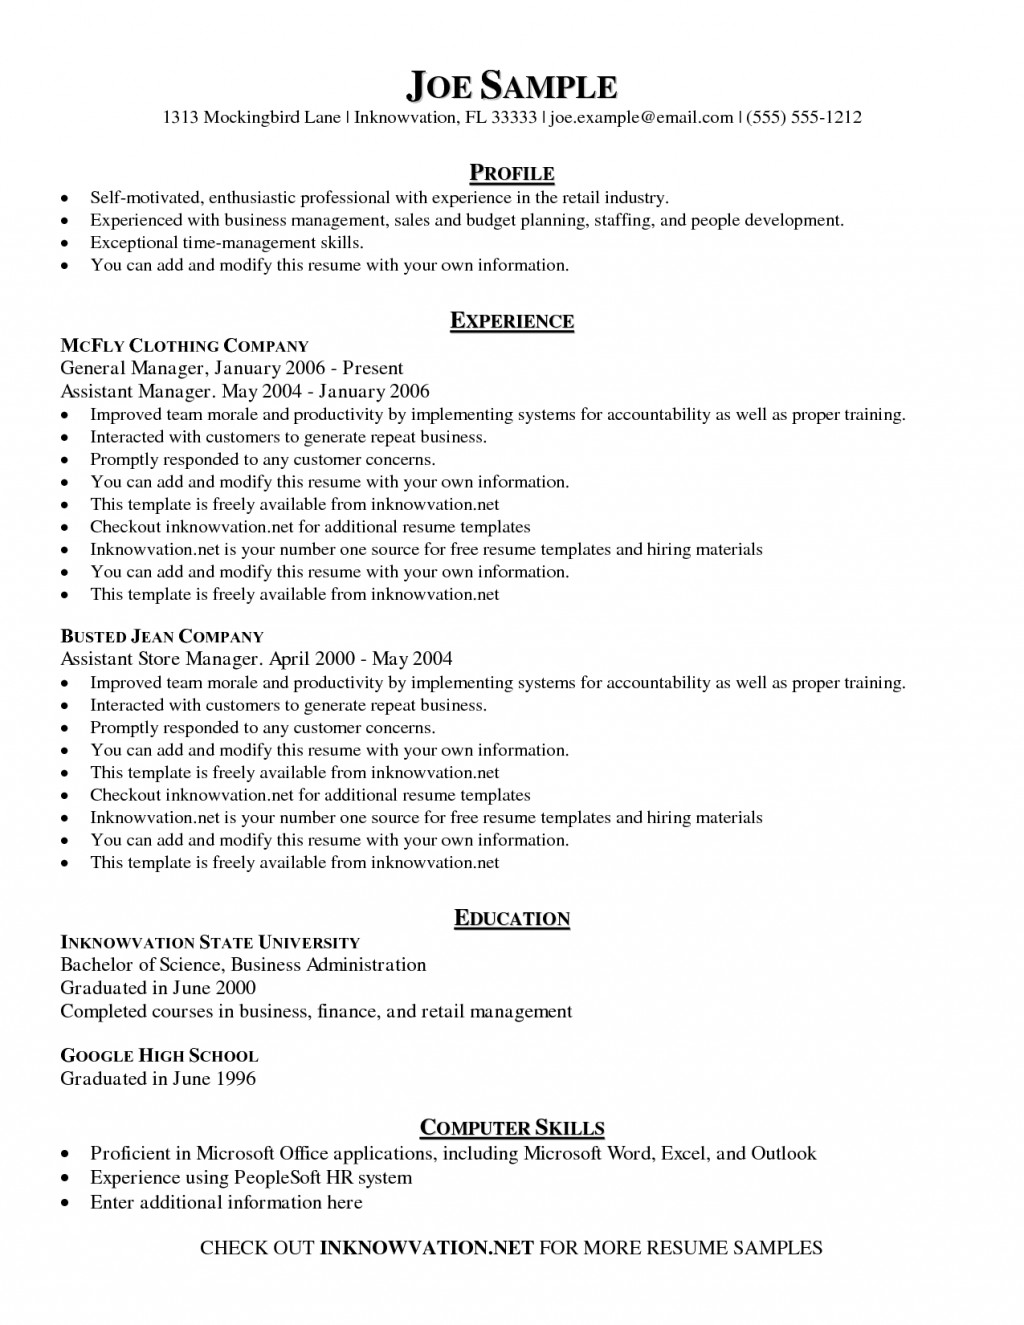 019 Asa Essay Format Sample Resumes Templates Asafonggecco How To Write Resume Template Remarkable Reference Generator Heading Citation Large